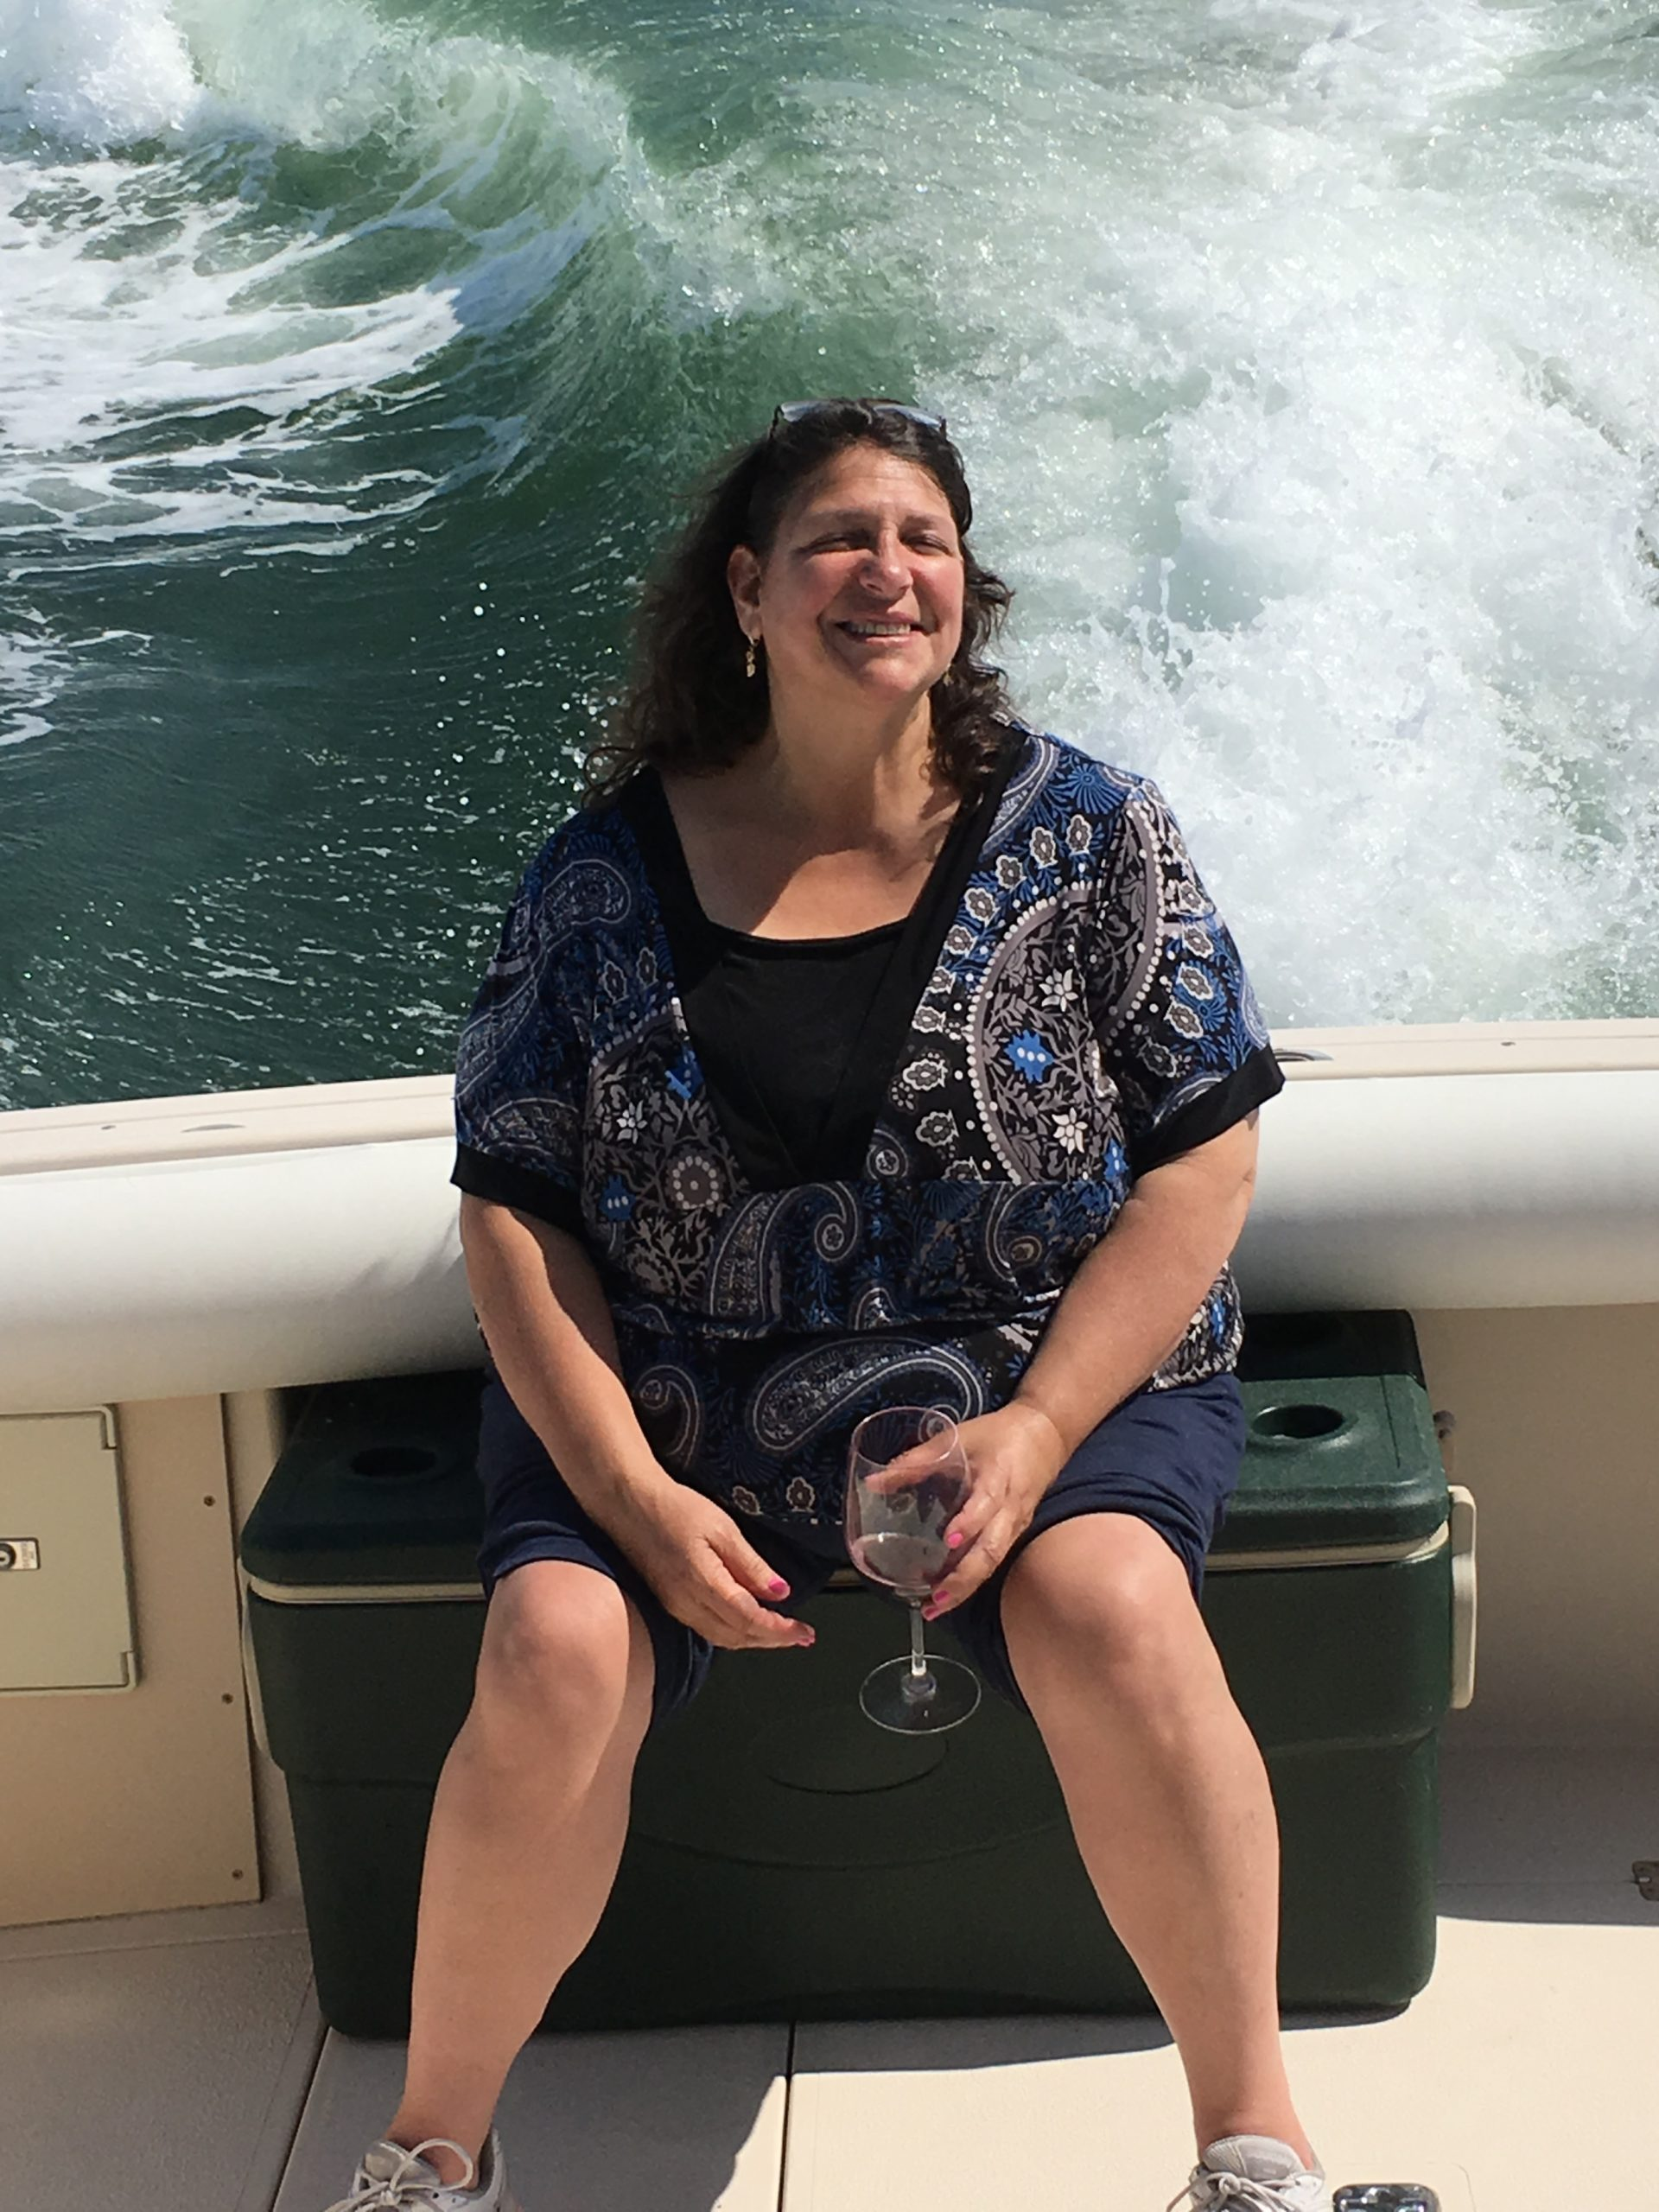 A Go Fund Me Page has been established to aid Raquel Barnes, a Sag Harbor native who recently learned she has amyotrophic lateral sclerosis, or Lou Gehrig's disease.